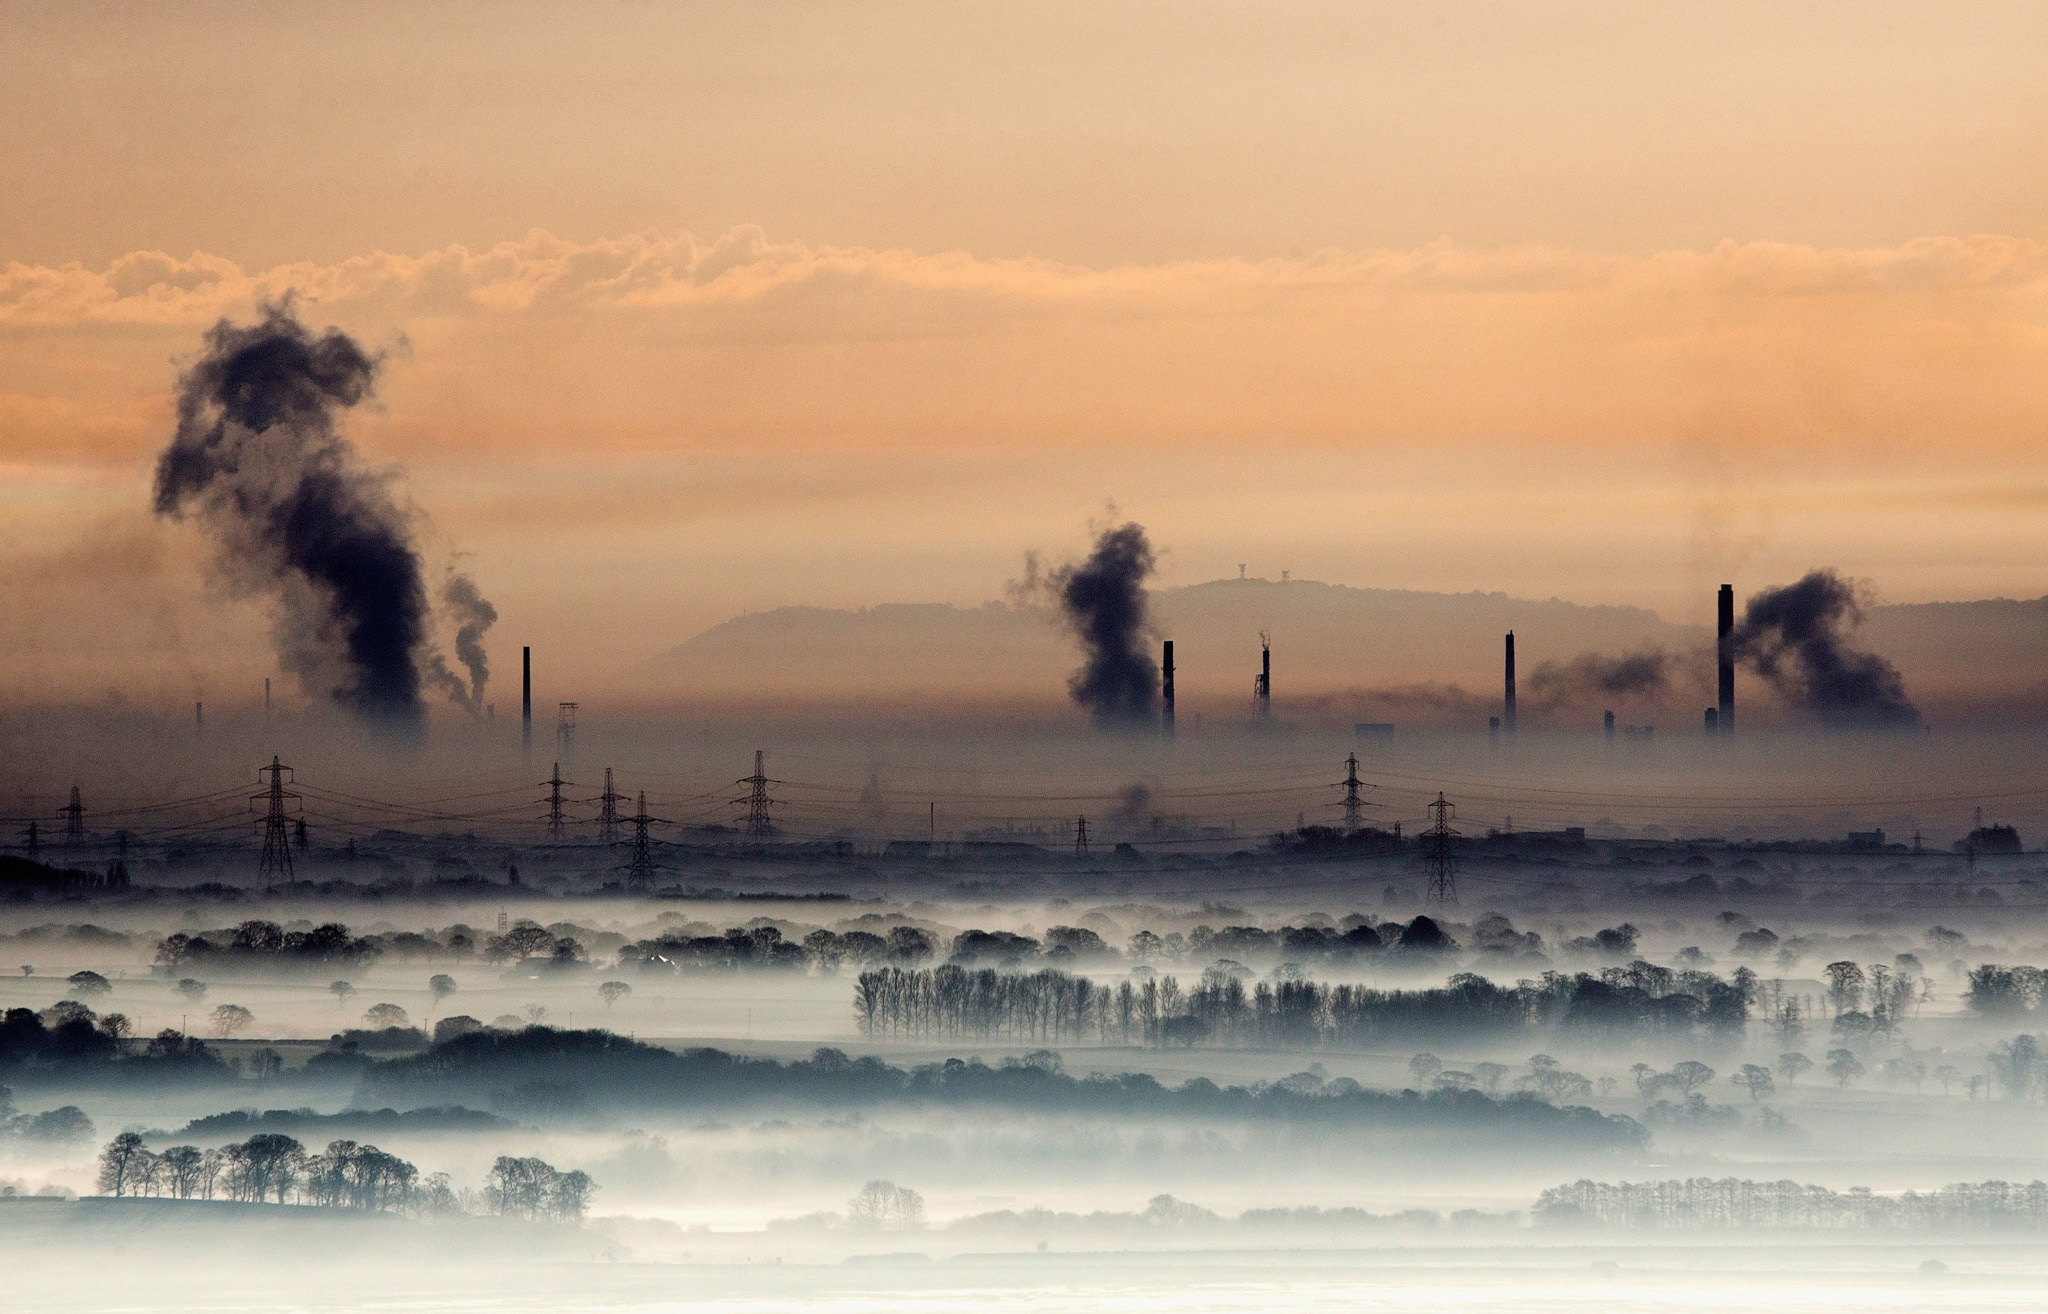 Industrial Views Across The Dee Valley...FLINT, WALES - APRIL 13:  The industrial landscape across the Dee Estuary at sunrise as steam rises from Deeside power station, Shotton Steelworks and other heavy industrial plants on April 13, 2016 in Flint, Wales. The British Steel industry has been plunged into crisis after Tata Steel announced it would begin the process of selling its loss-making plants in the UK, putting thousands of jobs at risk.